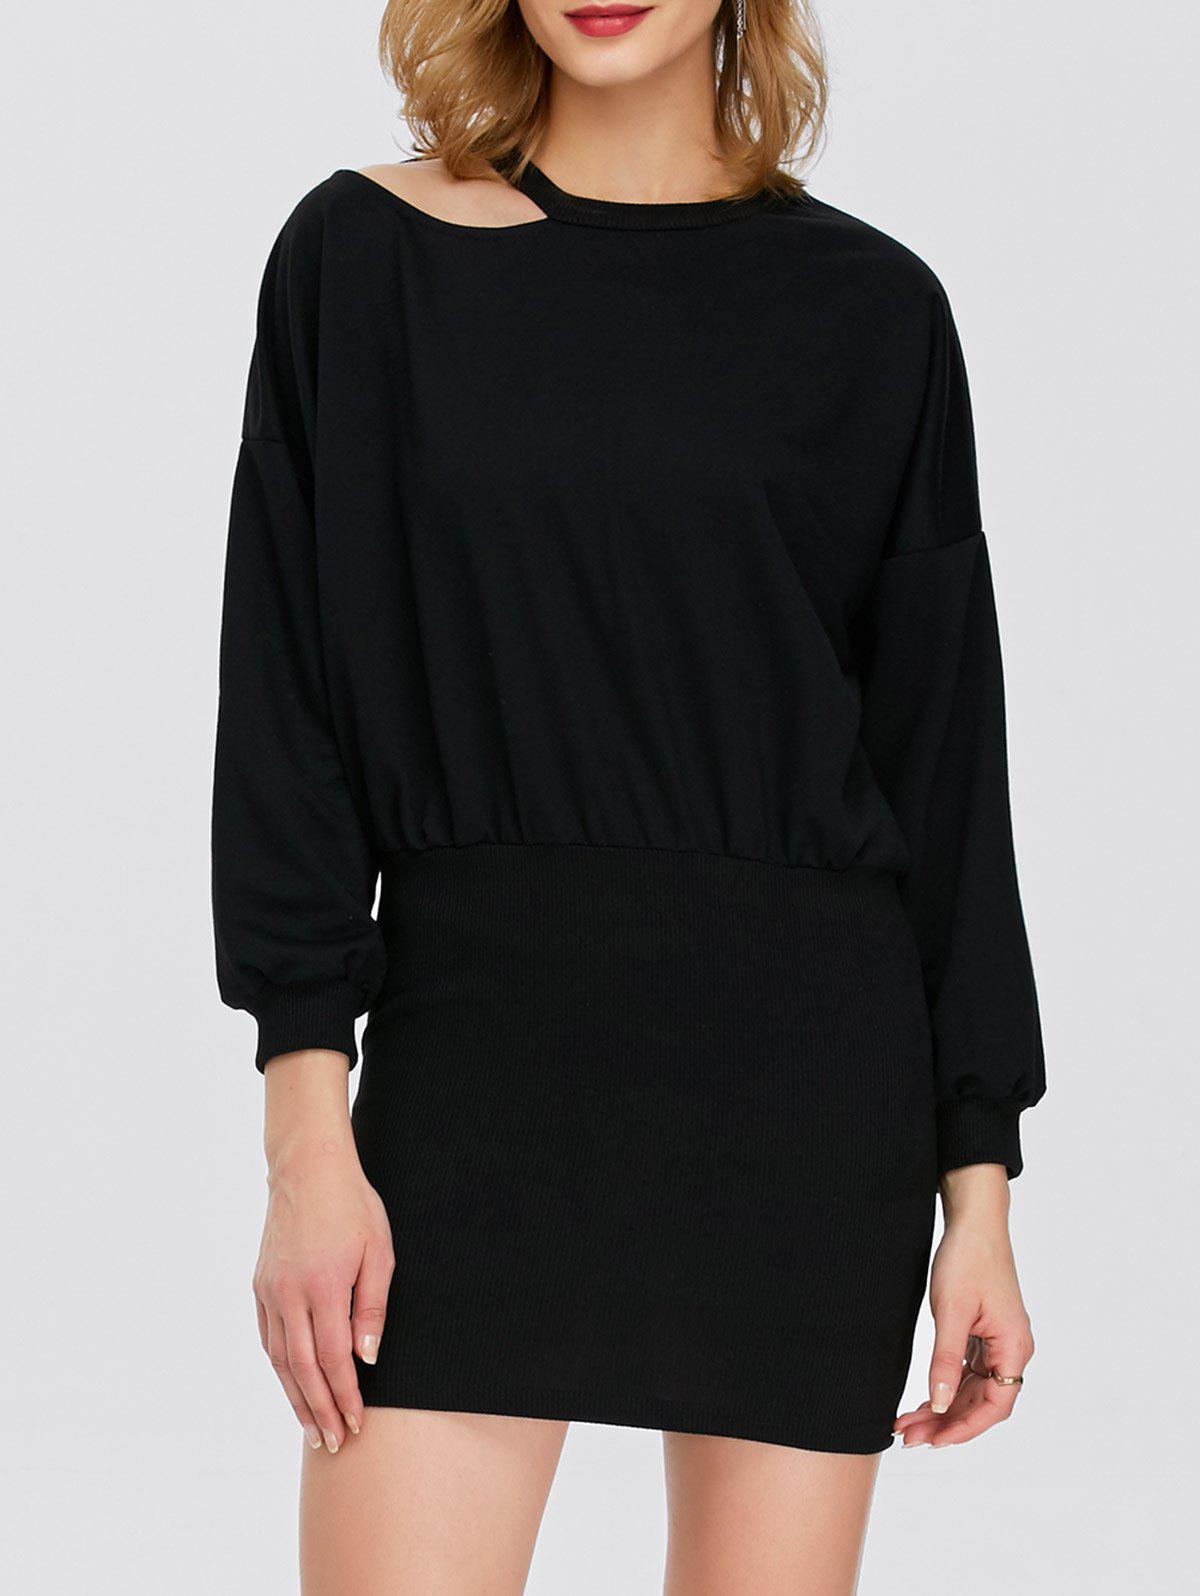 Hollow Out Puff Sleeves Bodycon Dress - BLACK ONE SIZE